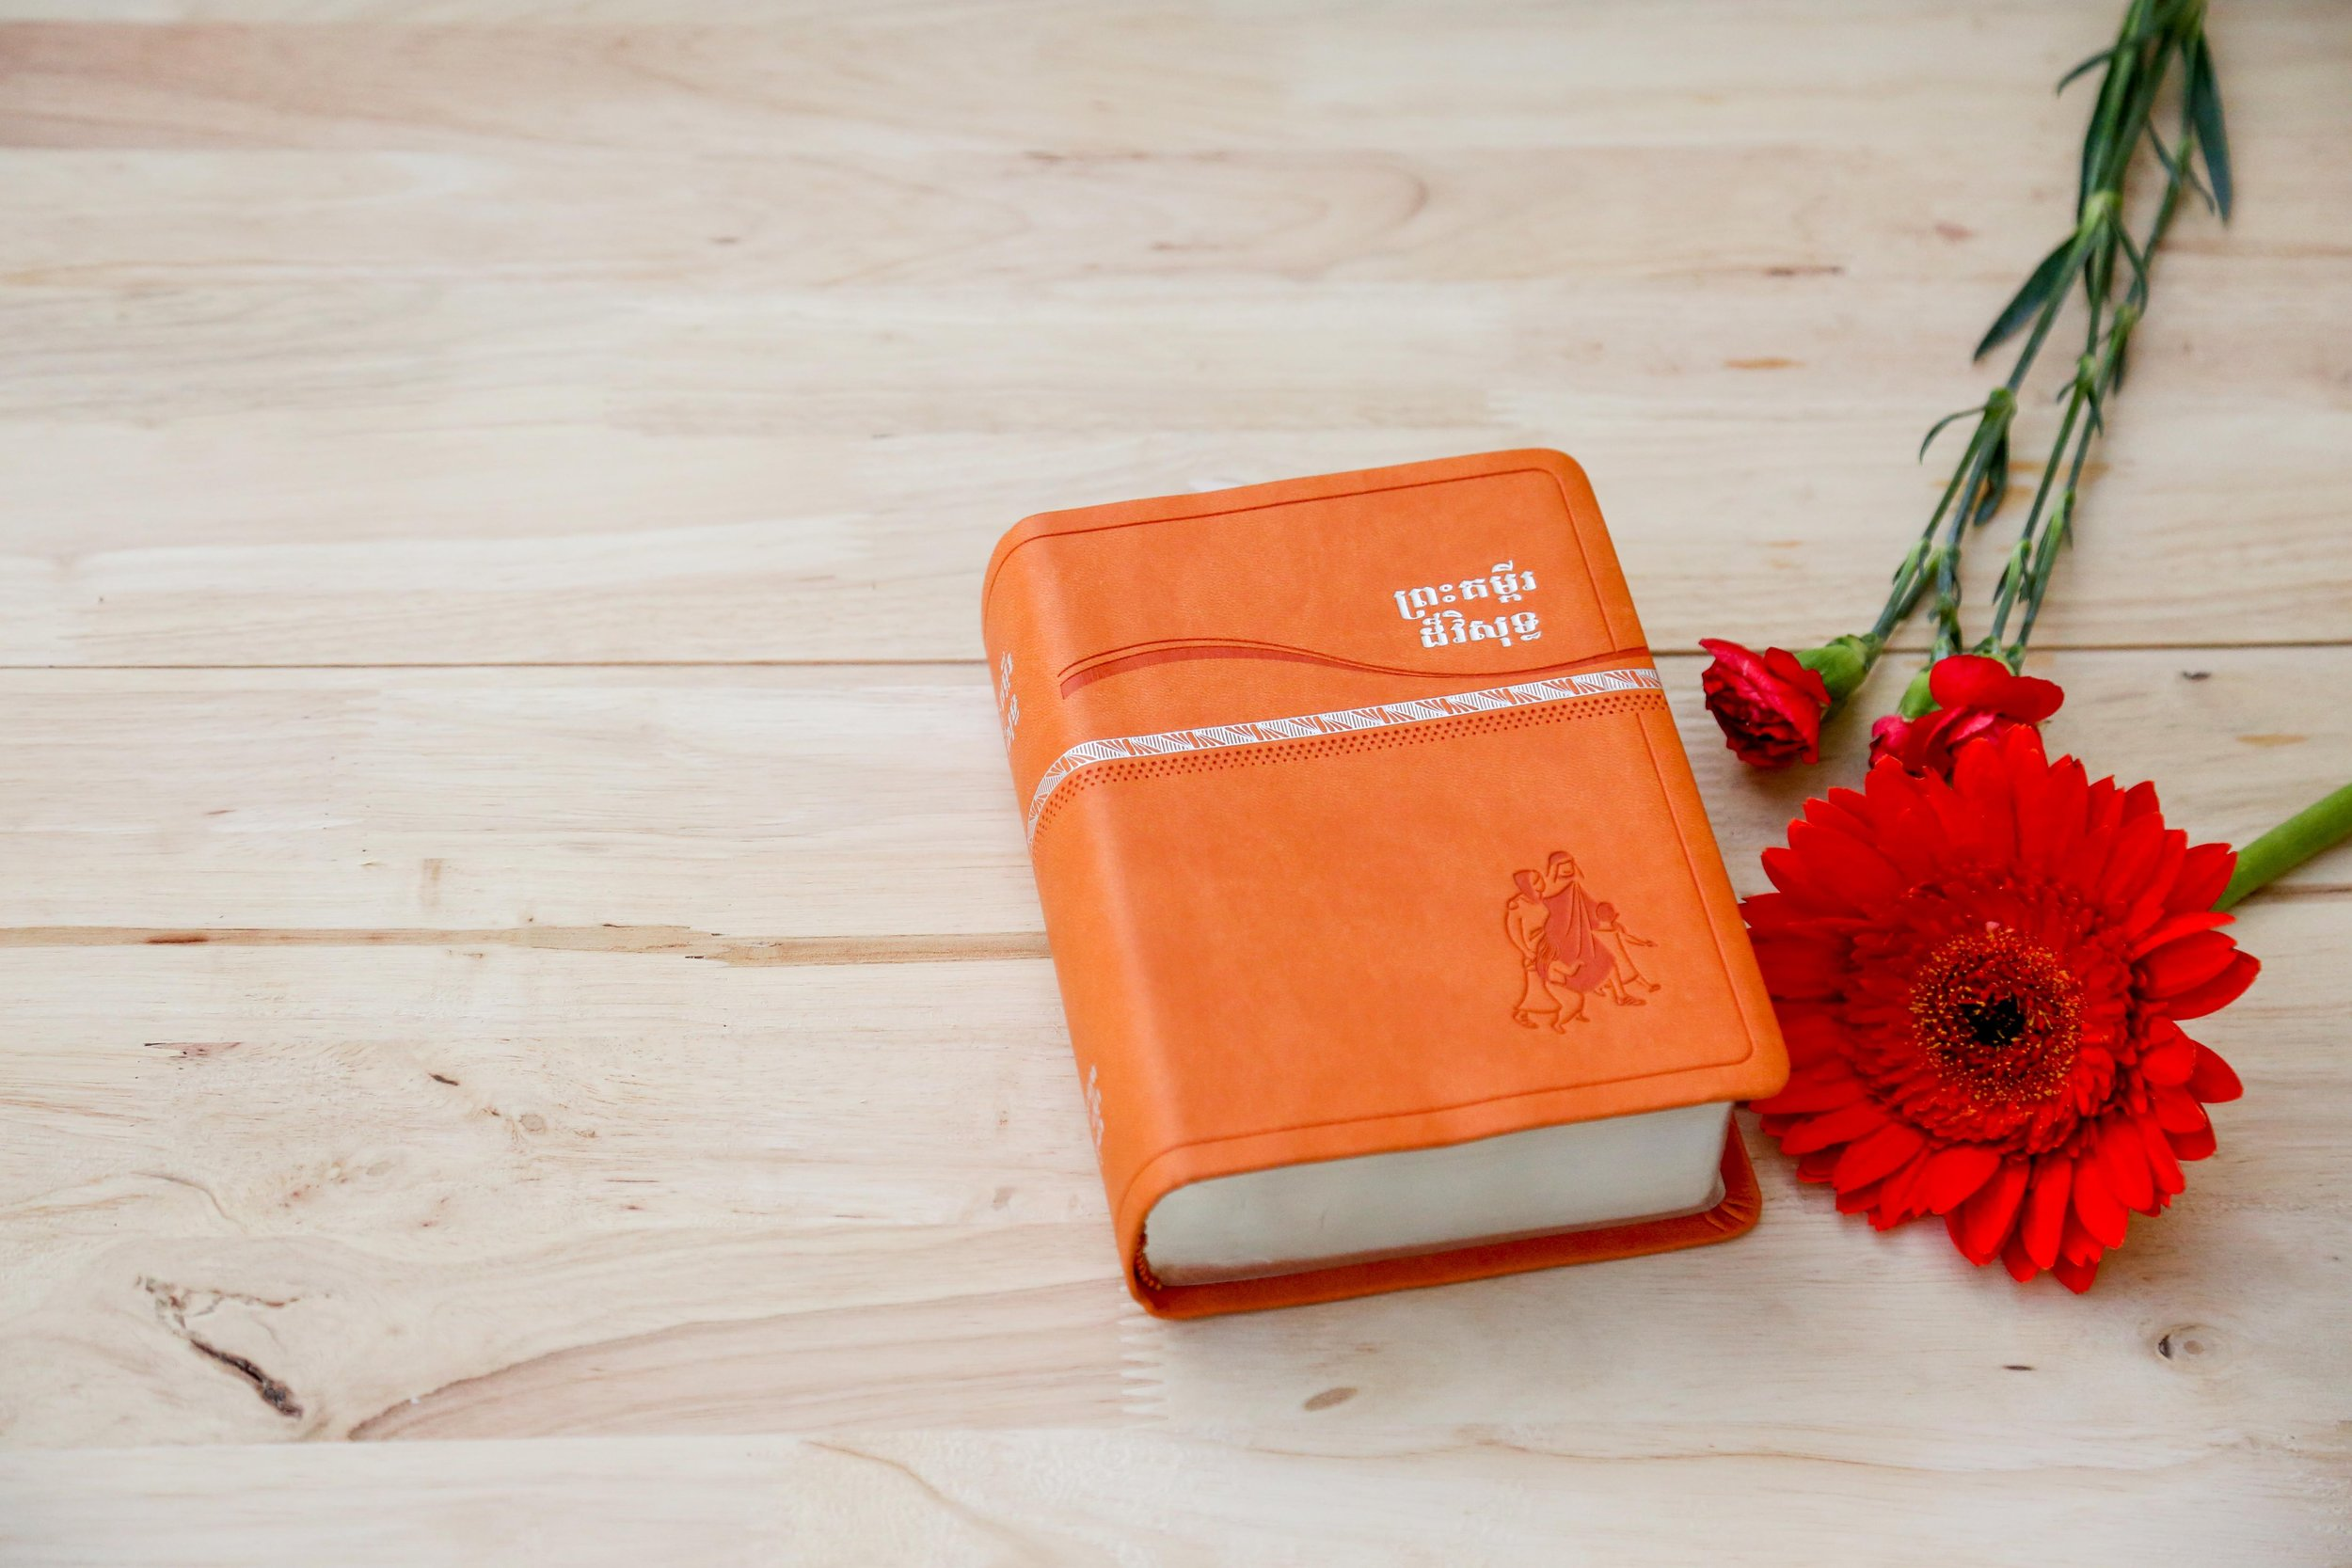 Bible and red flower.jpg